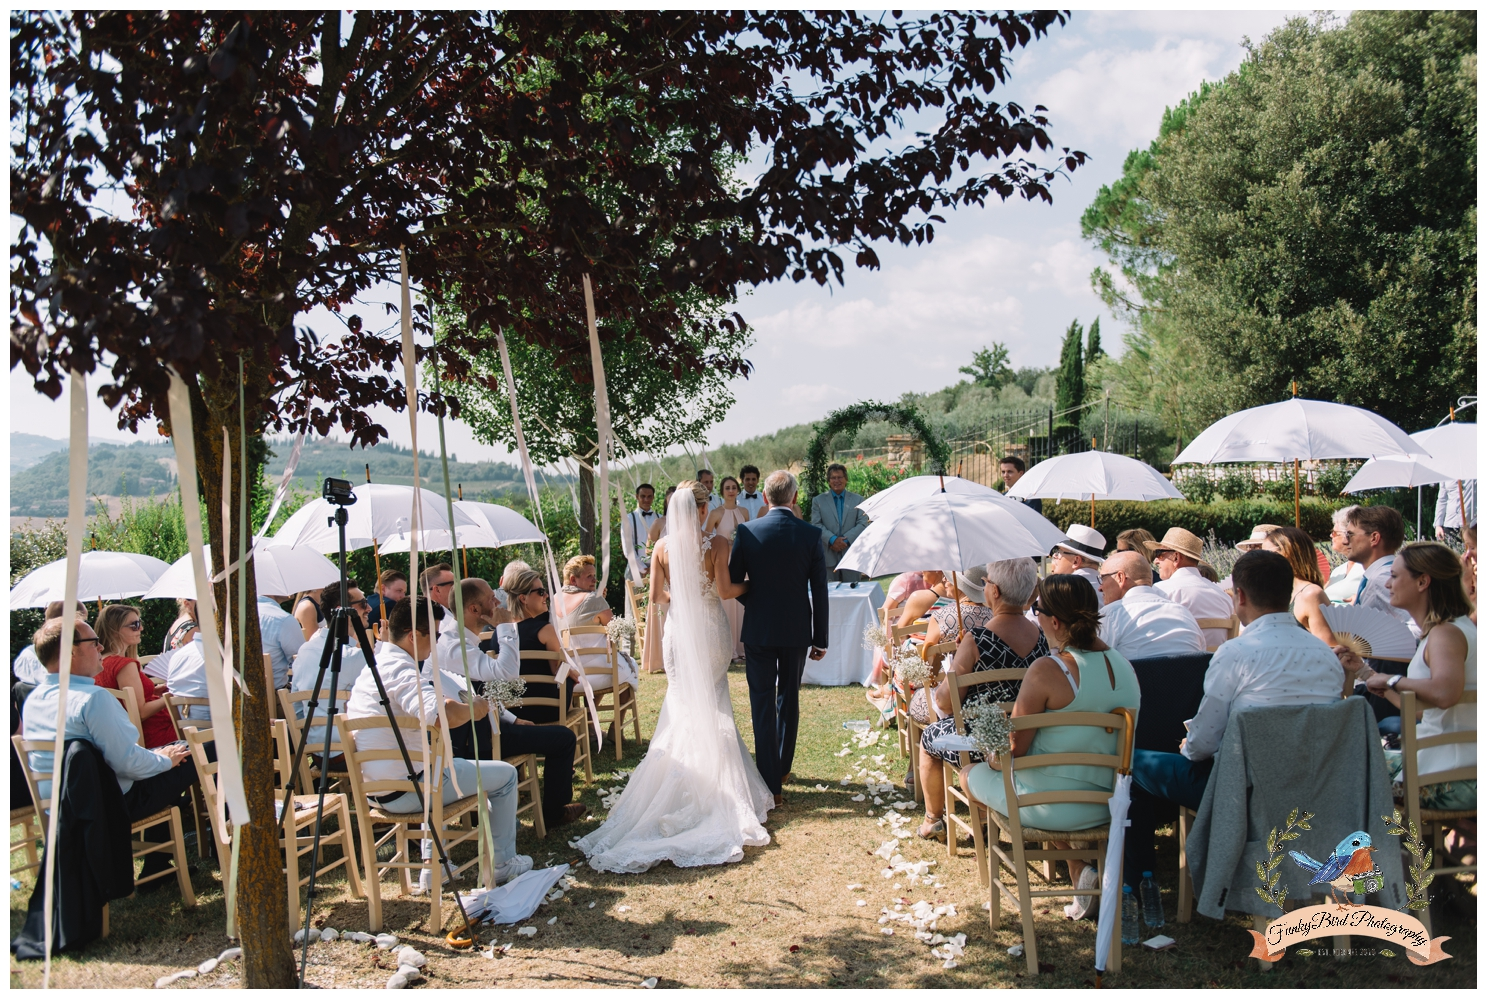 Wedding_Photographer_Tuscany_Italy_0020.jpg